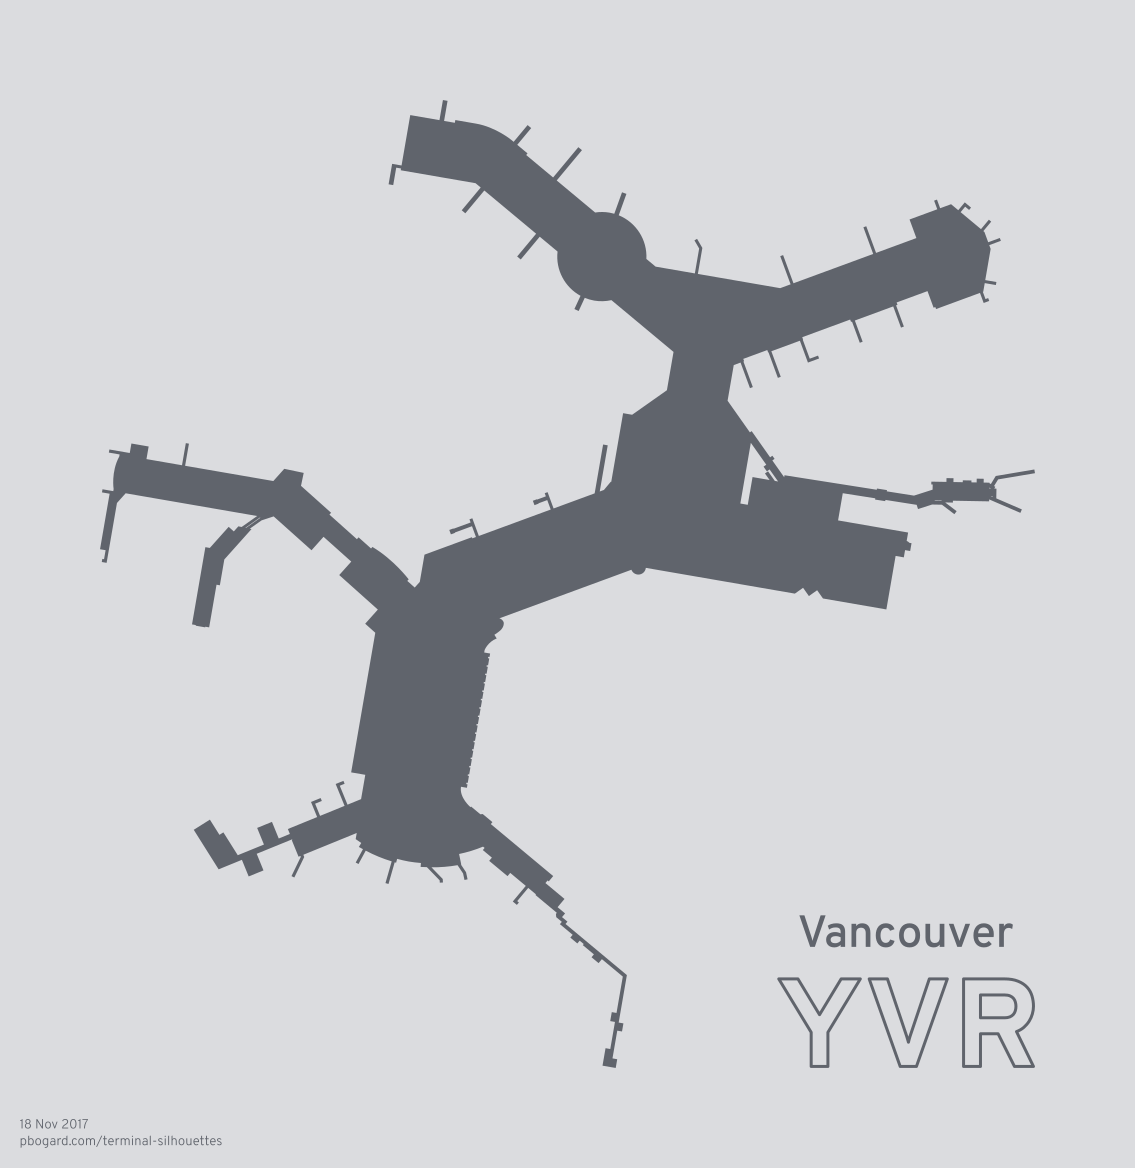 Terminal silhouette of YVR (Vancouver)